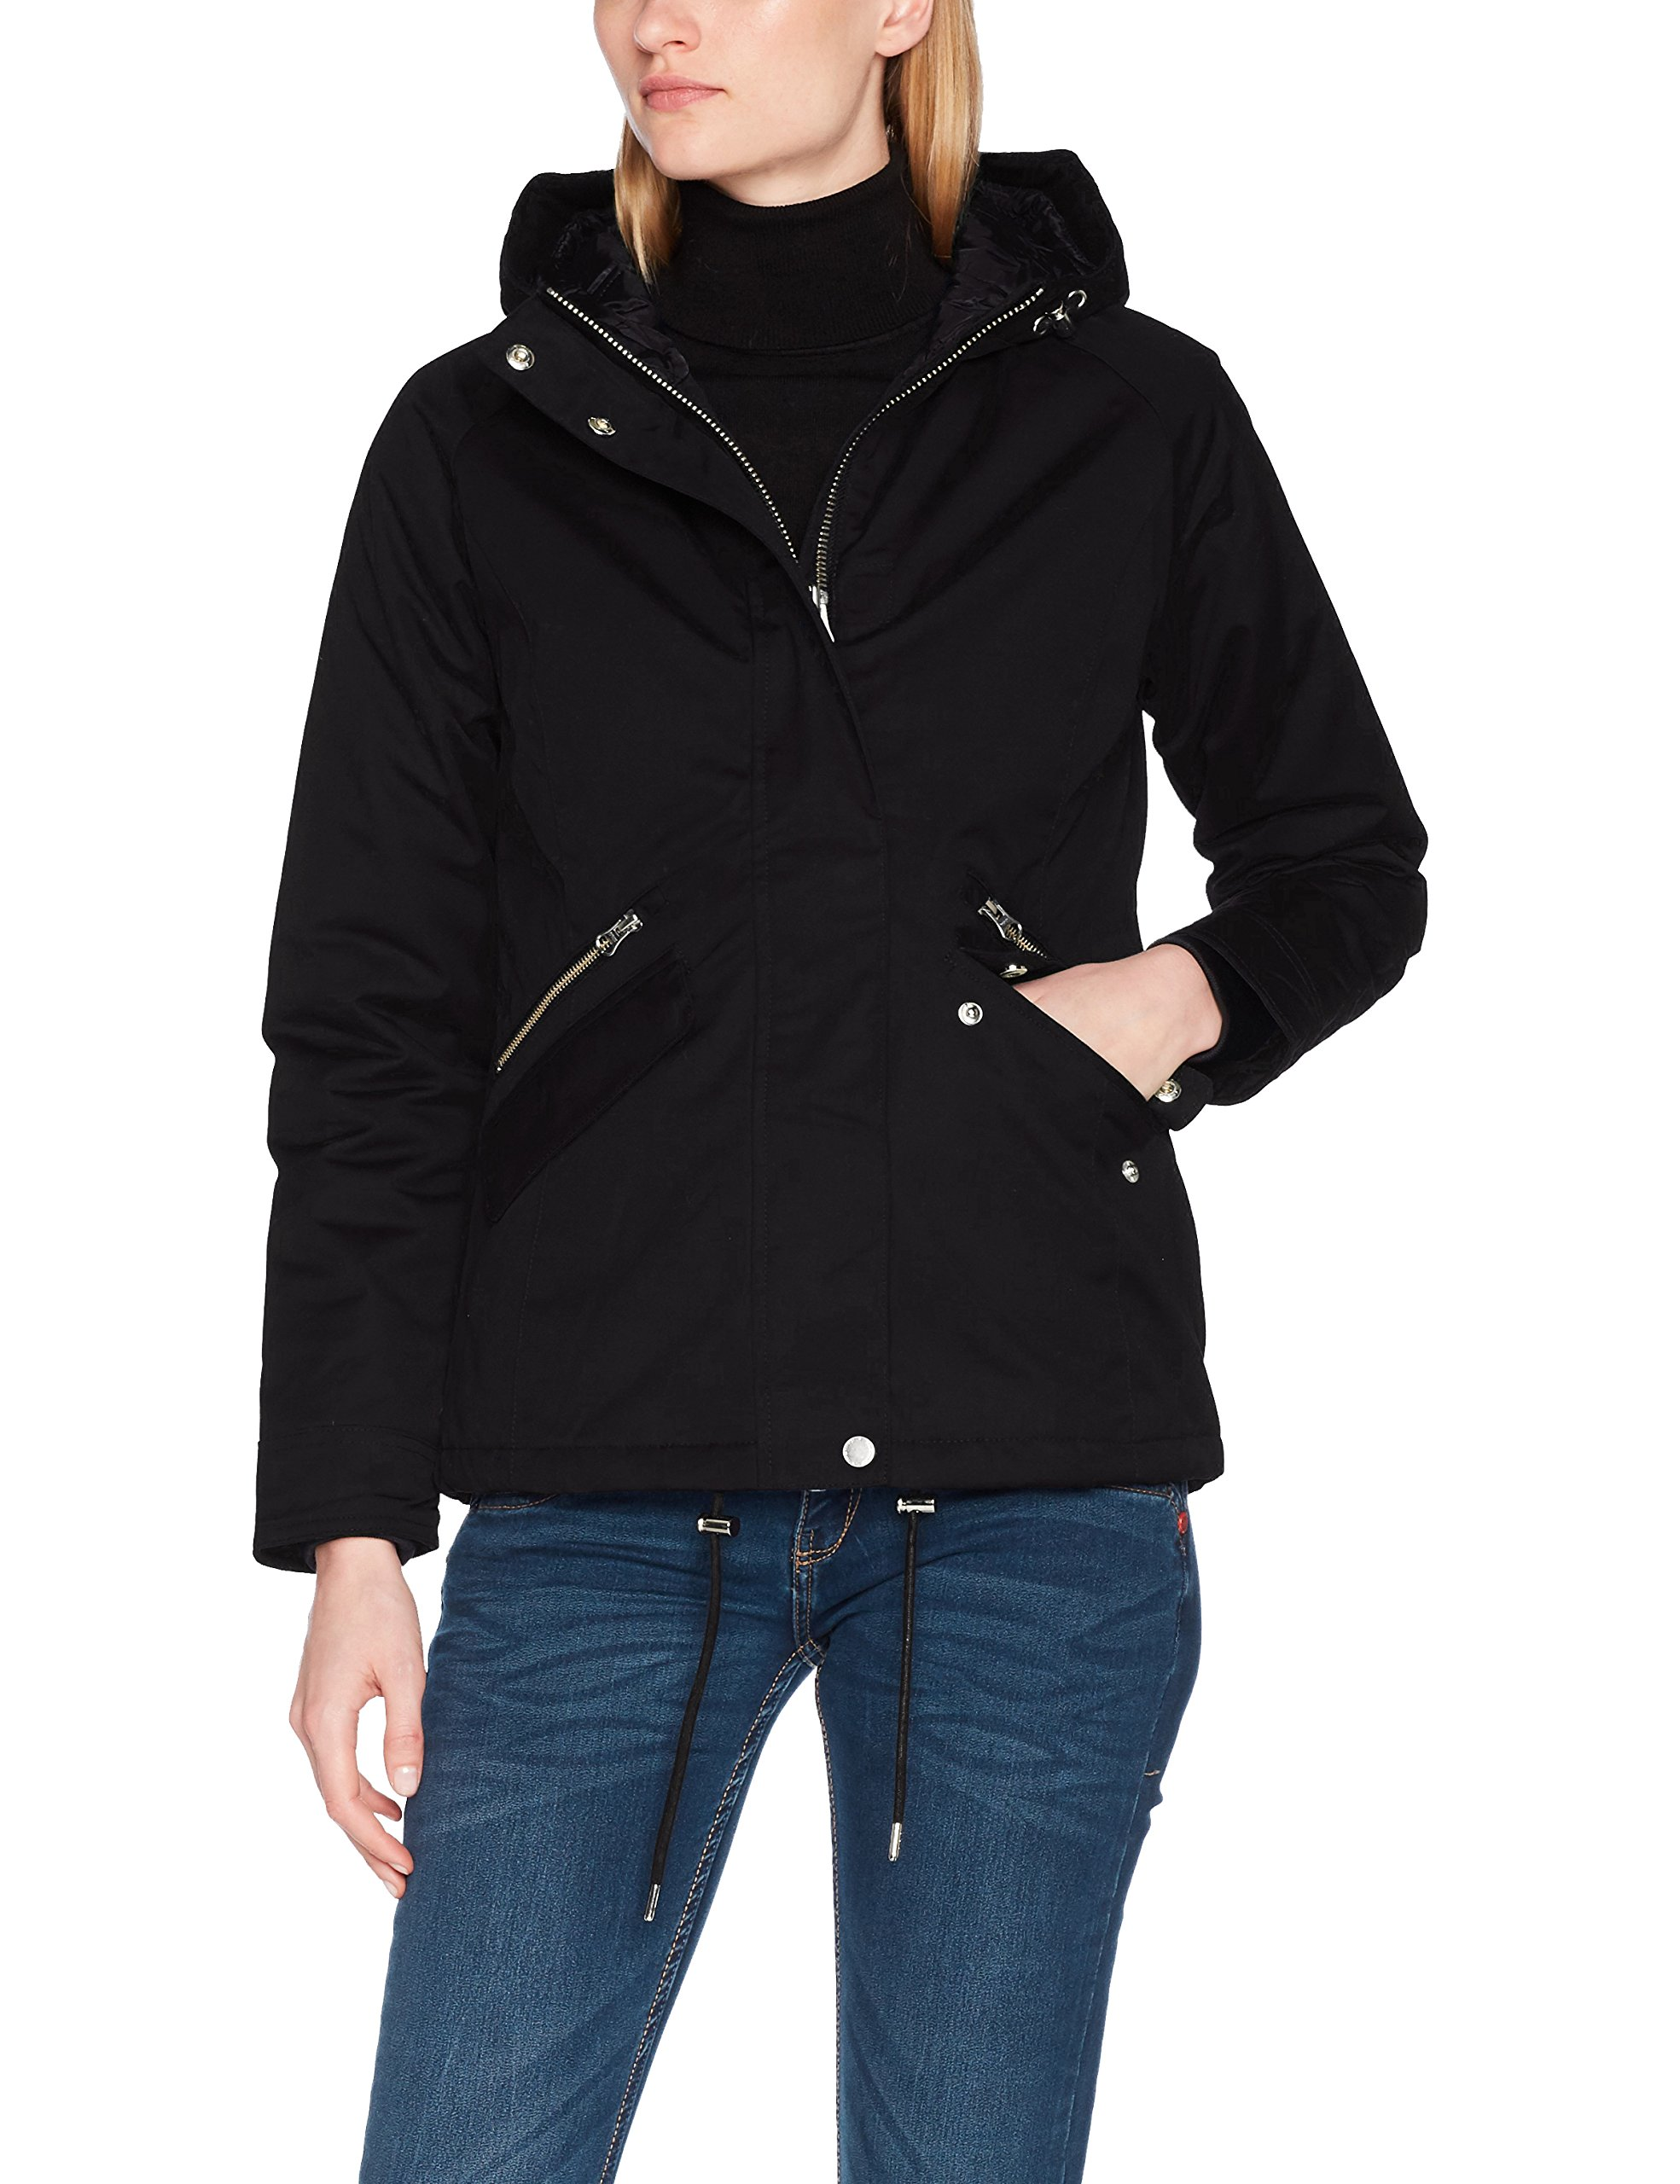 Femme Harvest Jacket Coat James Rockingfield 044 Ladies BlousonNoirblack 900 lFcK1JT